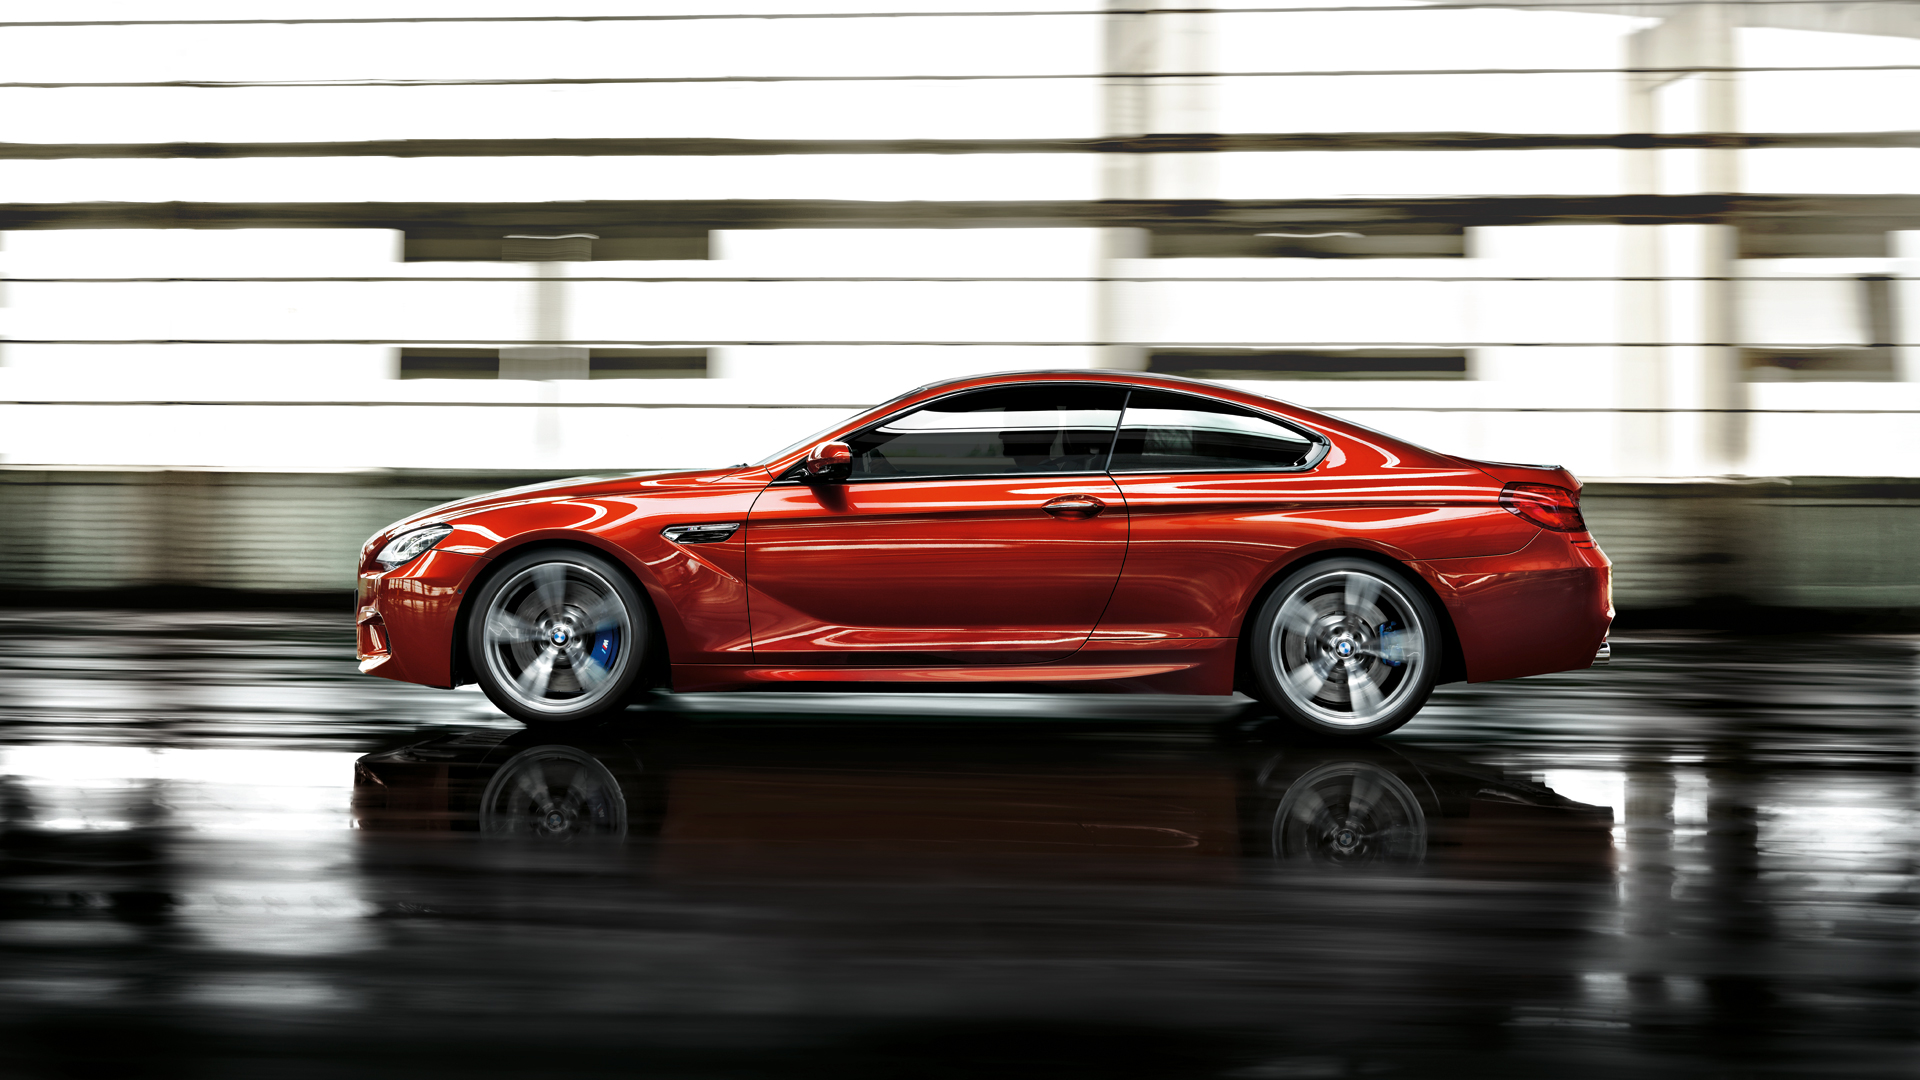 Wallpapers: New BMW M6 Coupe and Convertible